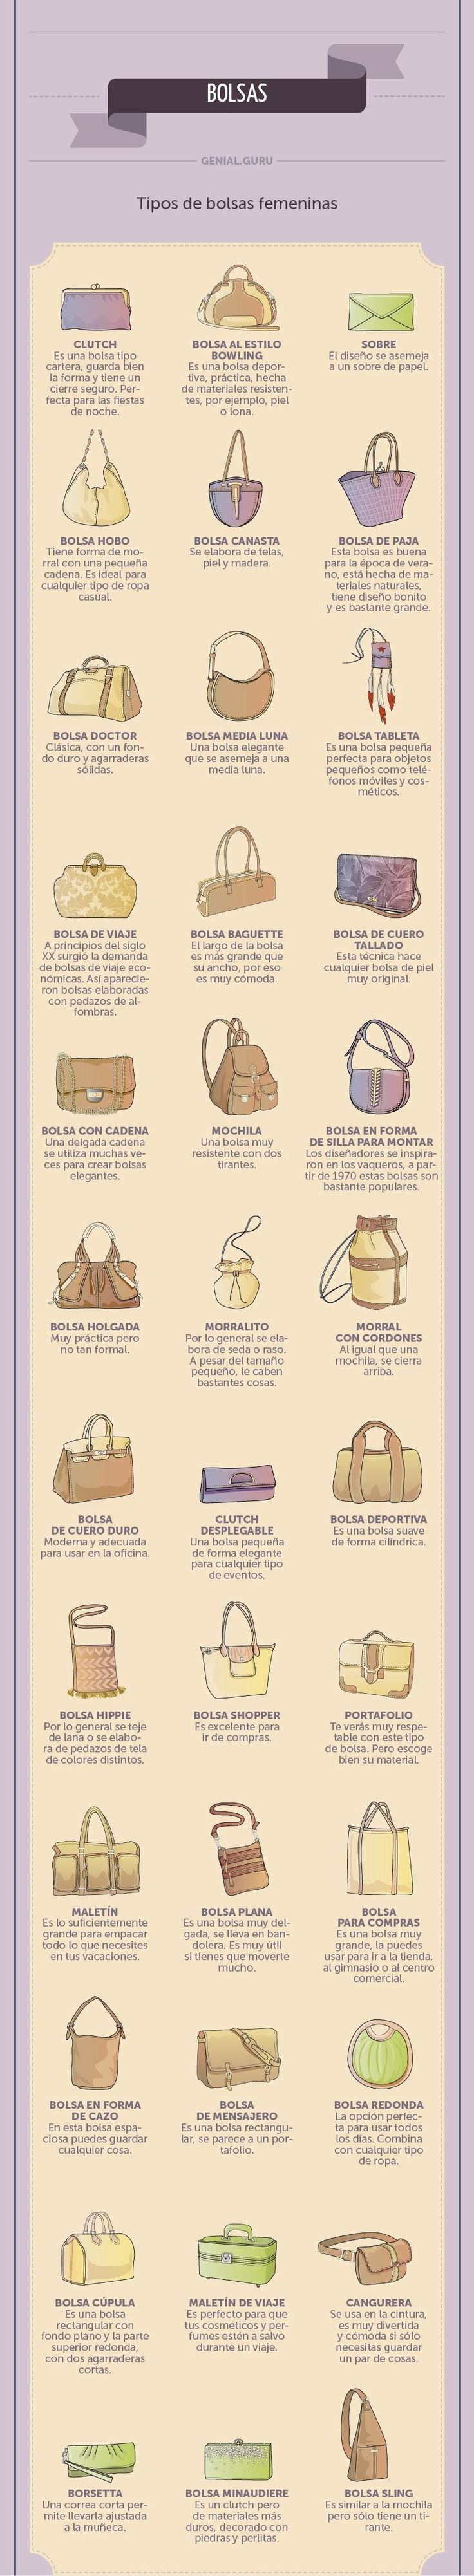 Fashion Vocabulary Bags Styles. Estilos de bolsas.